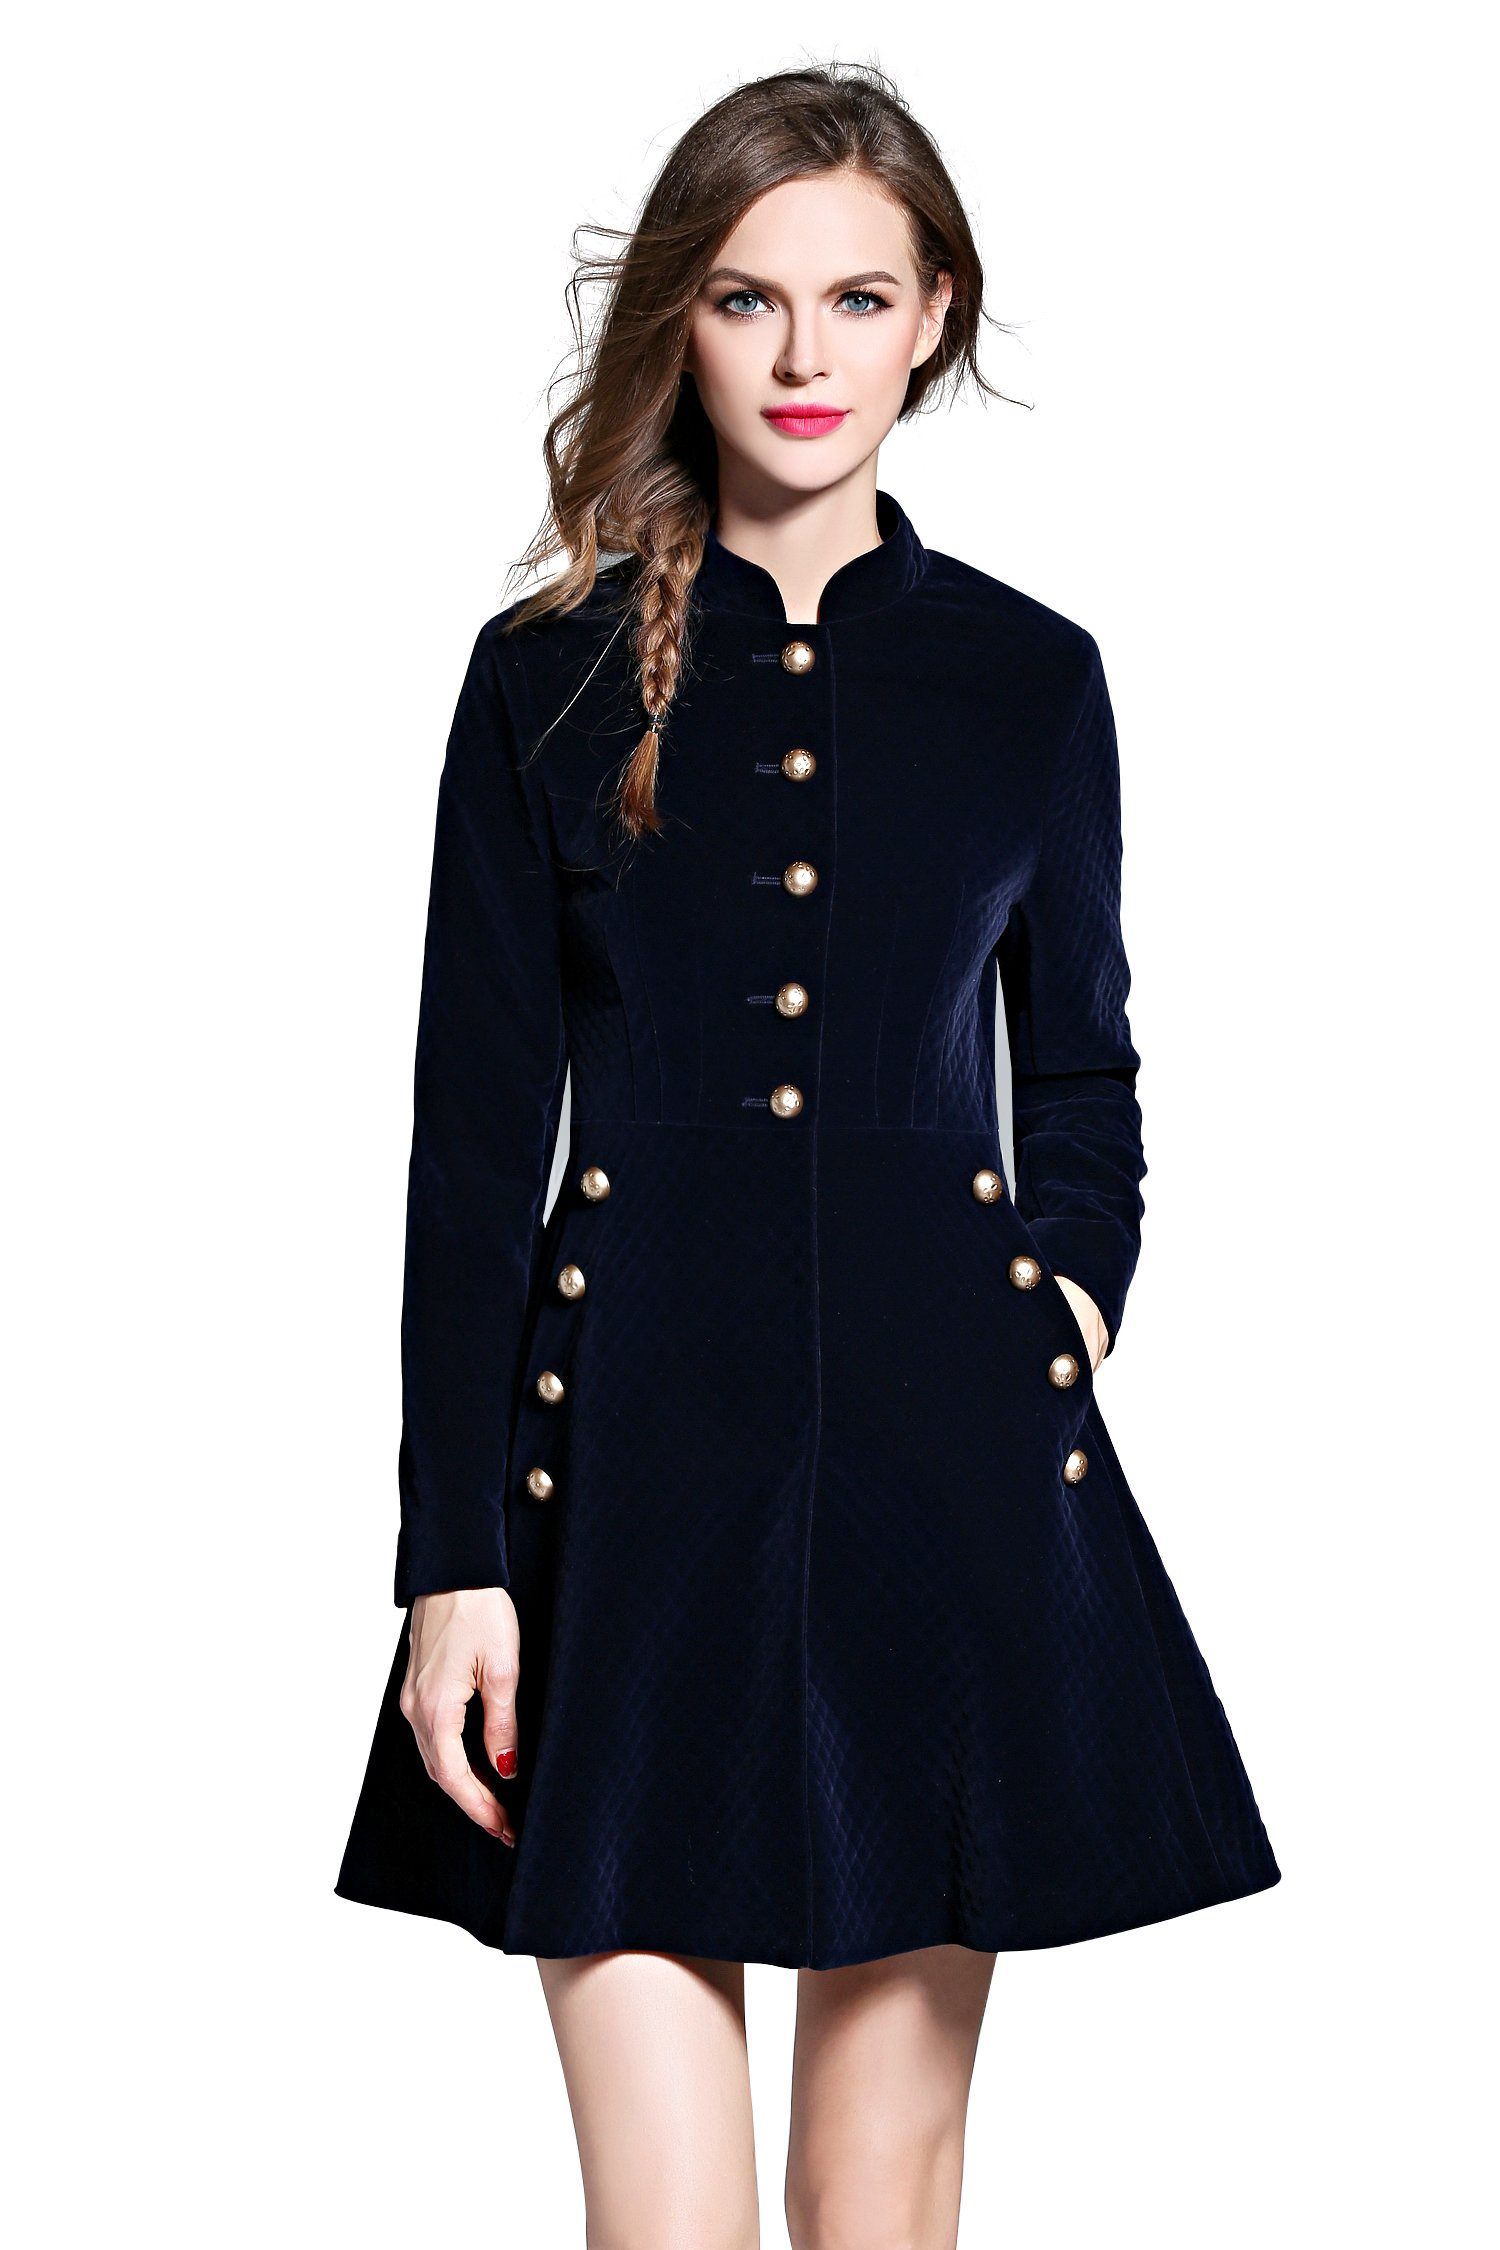 Women's Slim Button Front Coat Corduroy Swing A-line Party Evening Cocktail Dress, Navy M